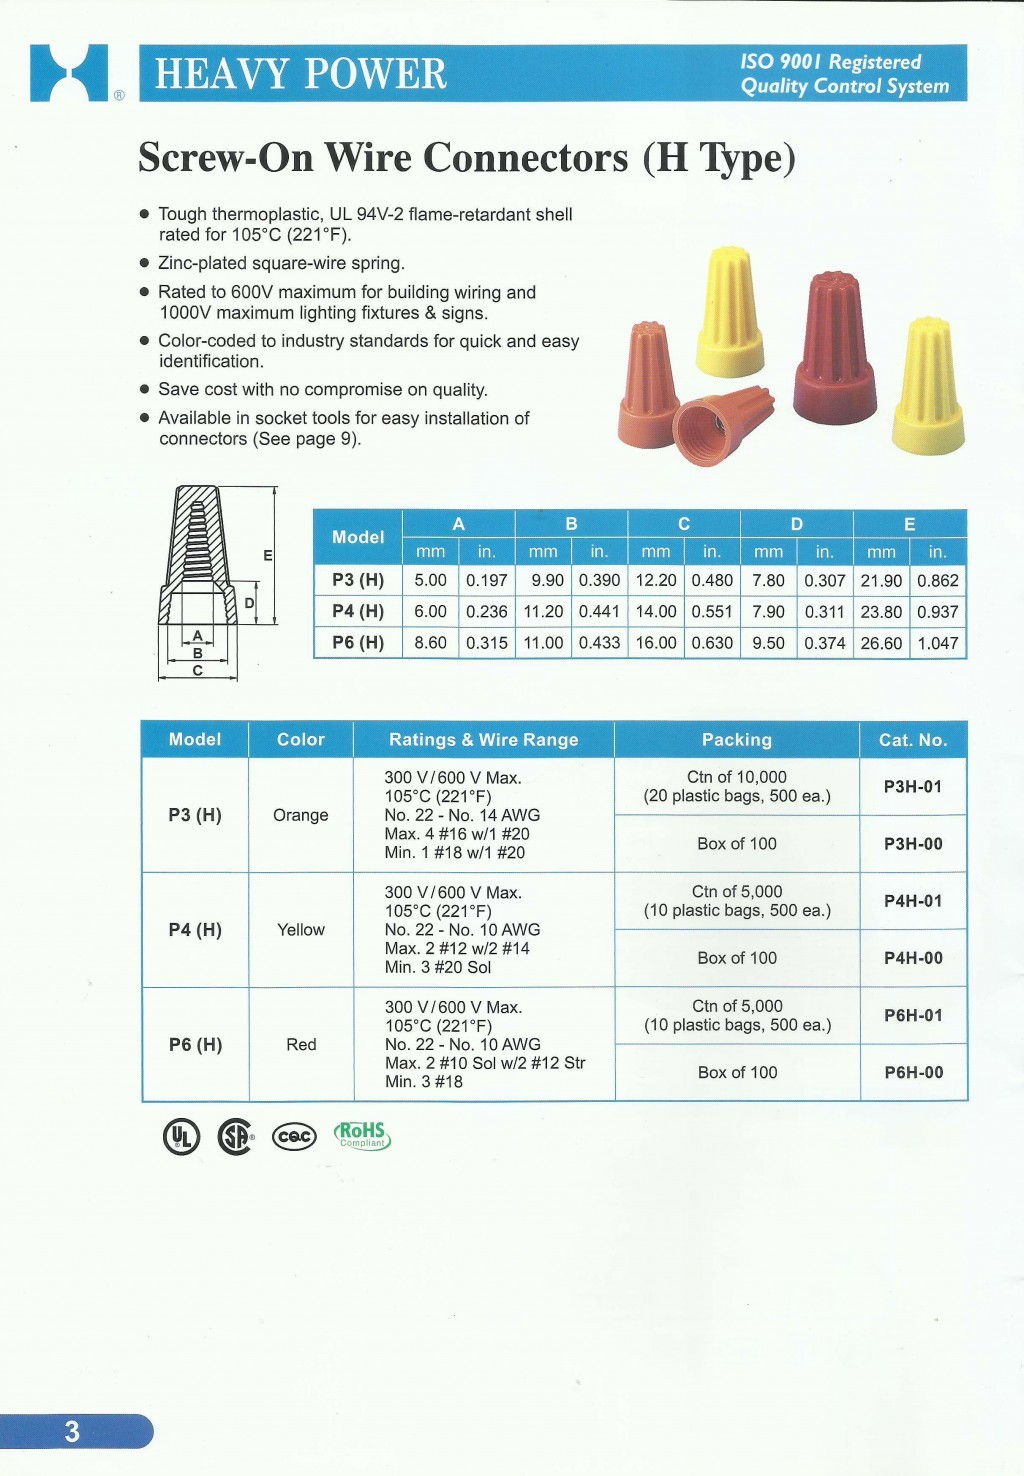 ACCESSORIES PANEL & BOX PANEL, HEAVY POWER, Screw-On Wire Connectors (H Type)